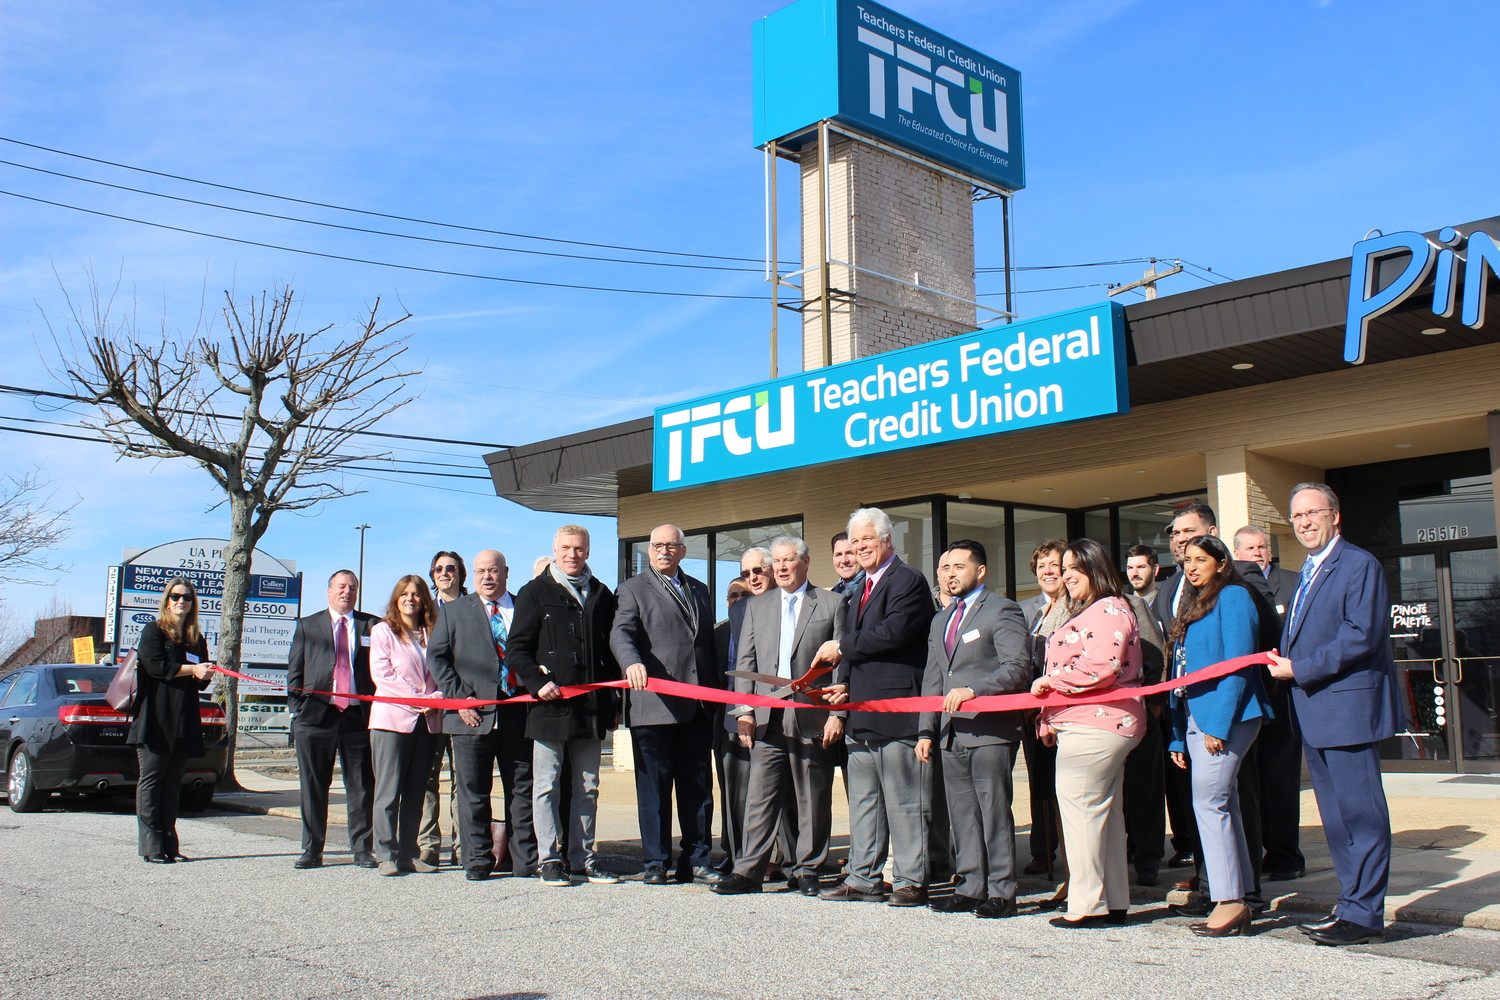 The East Meadow Chamber of Commerce celebrated the opening of the Teachers Federal Credit Union branch in East Meadow with a ribbon cutting on Jan. 17.